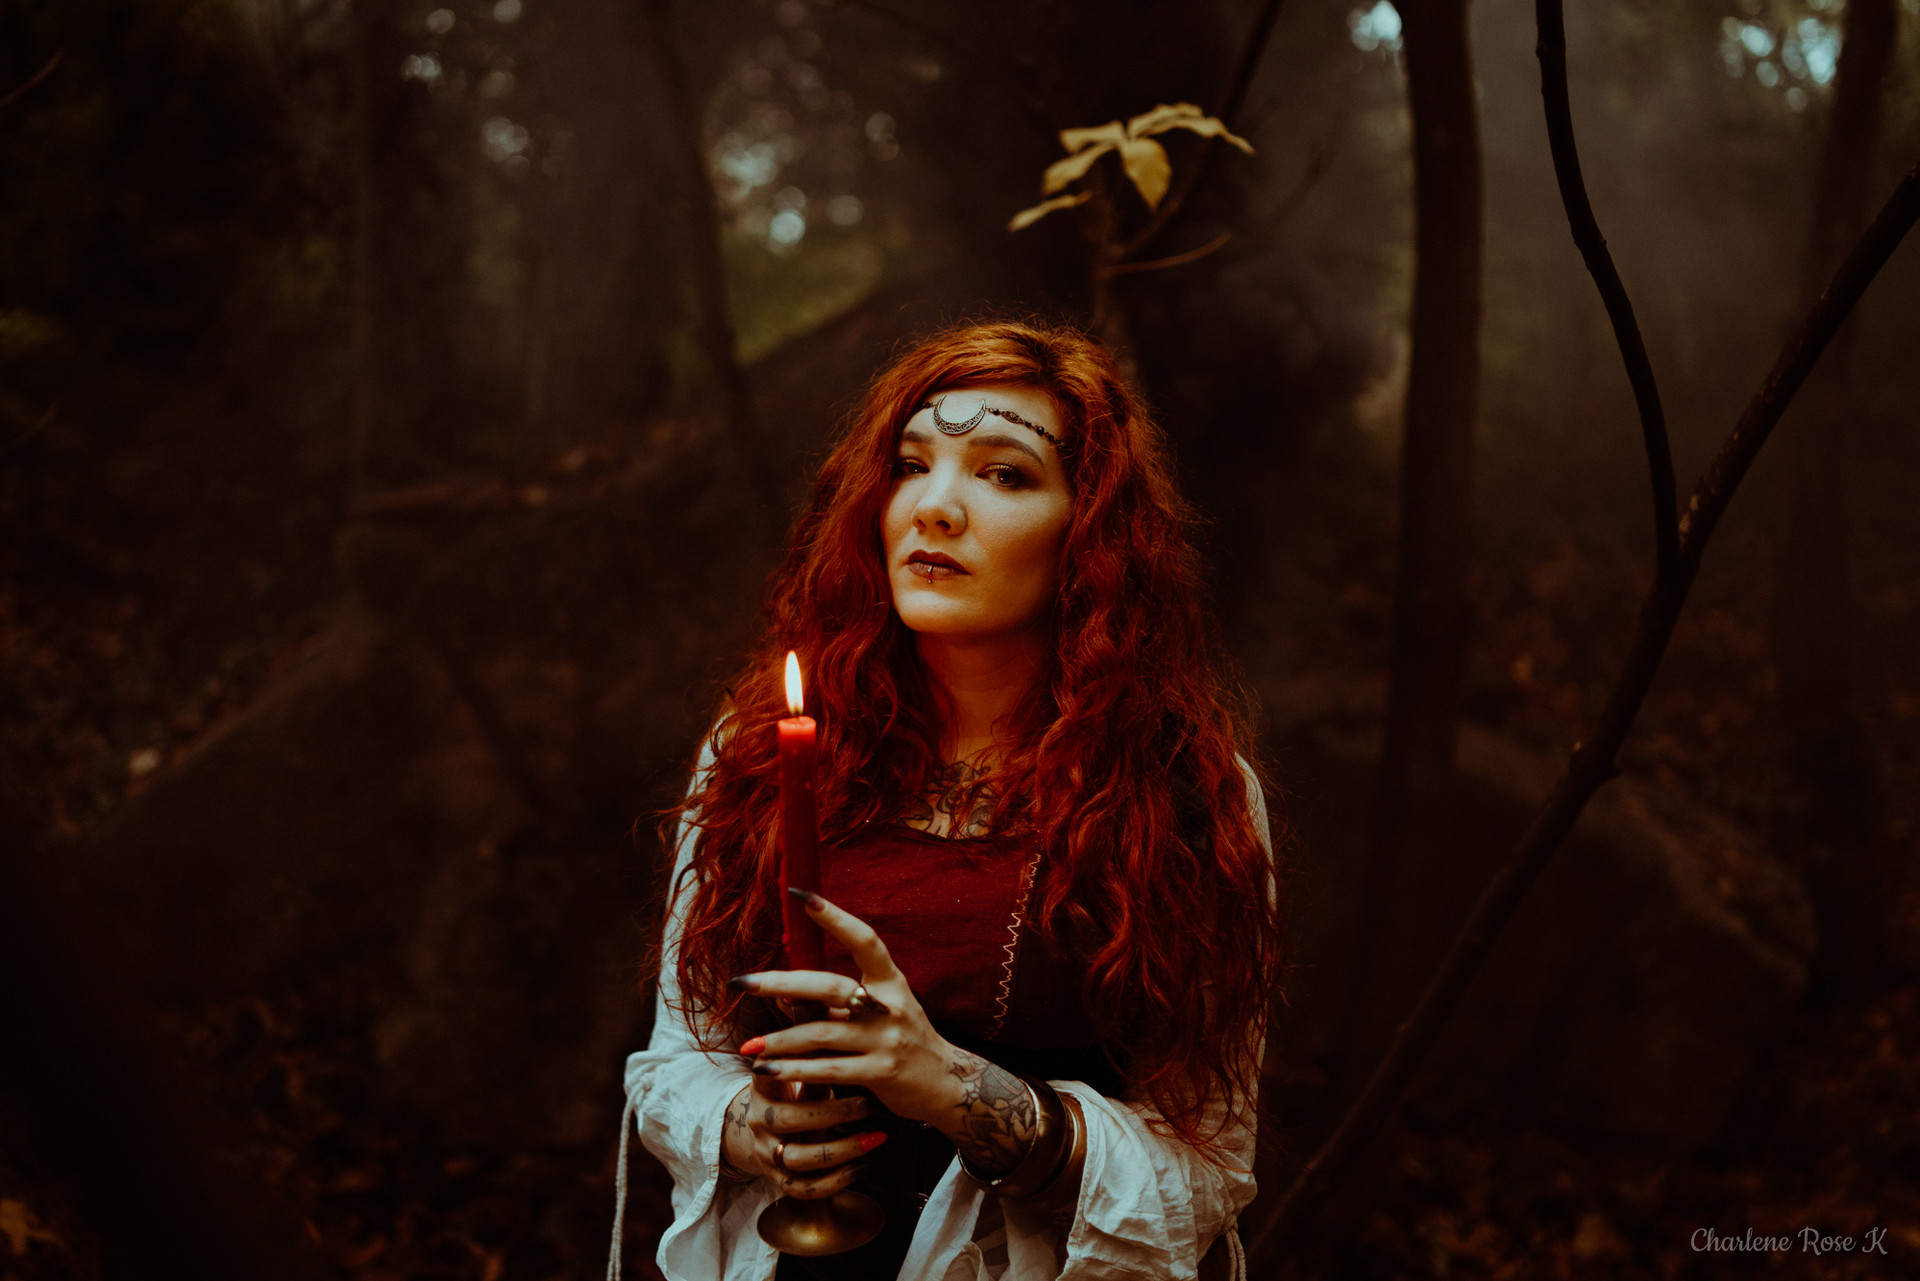 seance-photo-troyes-solo-femme-exterieur-witchy-crk-3